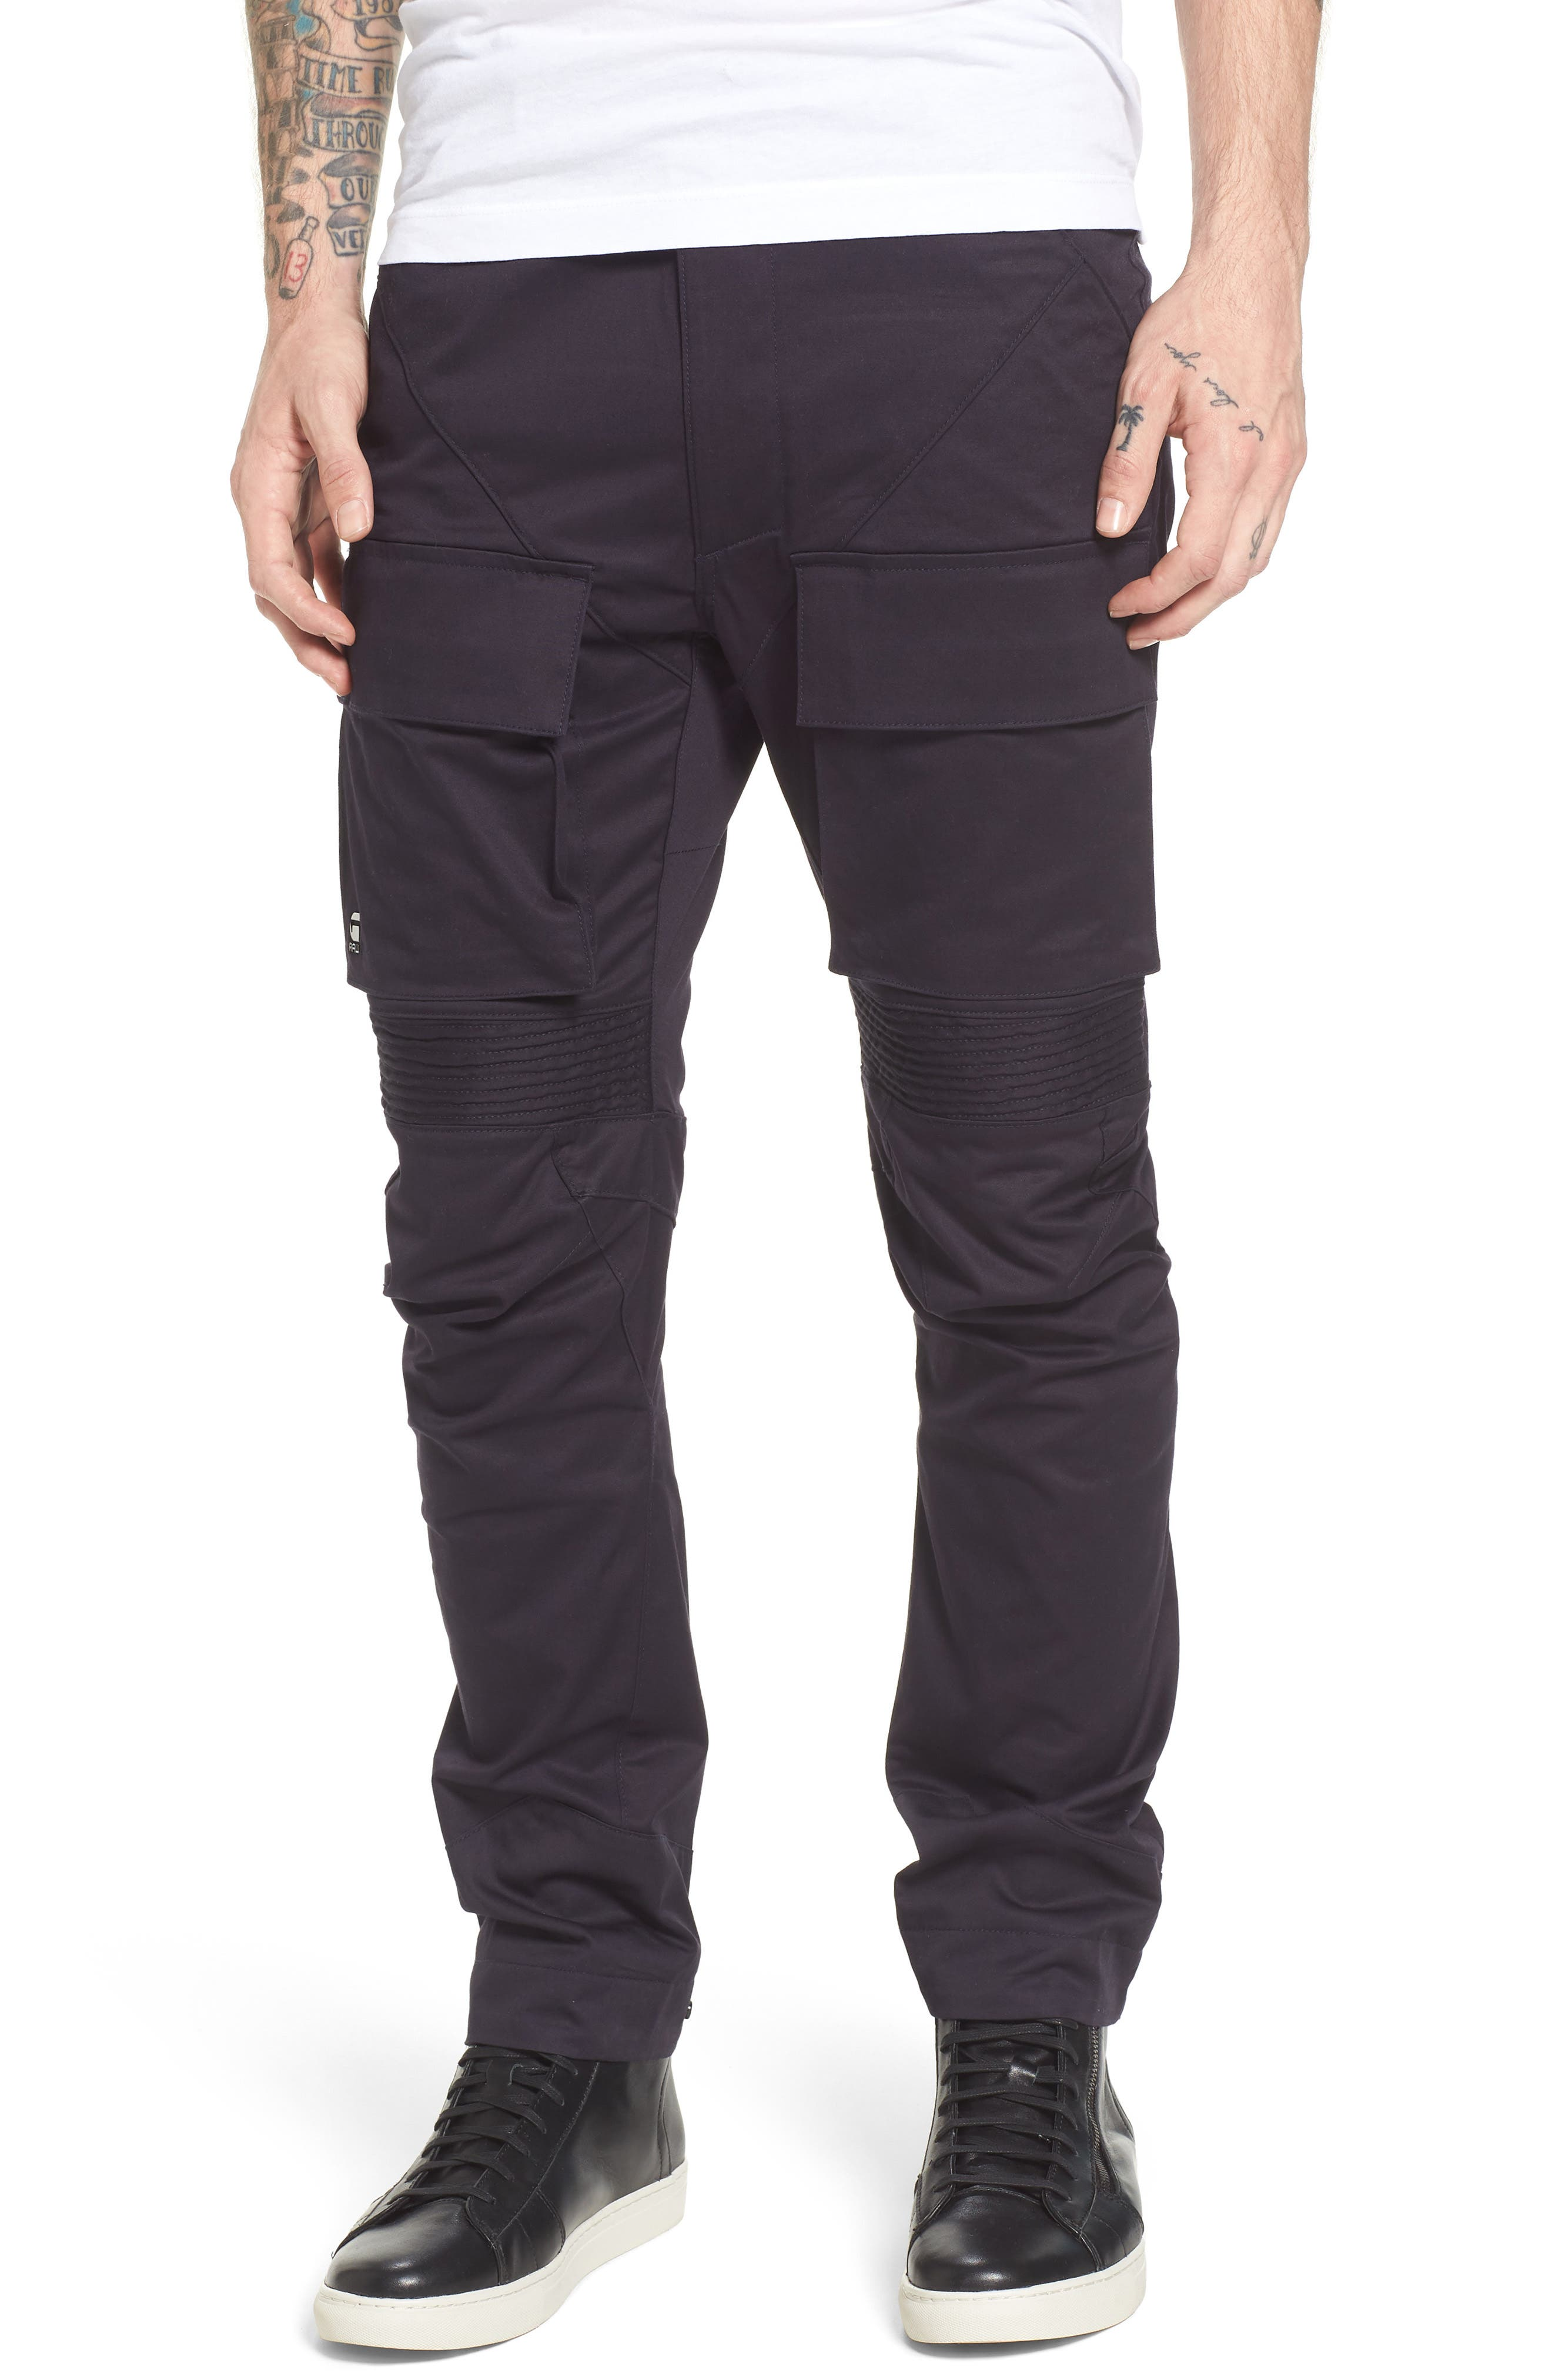 G-Star Raw Vodan DC Slim Pants